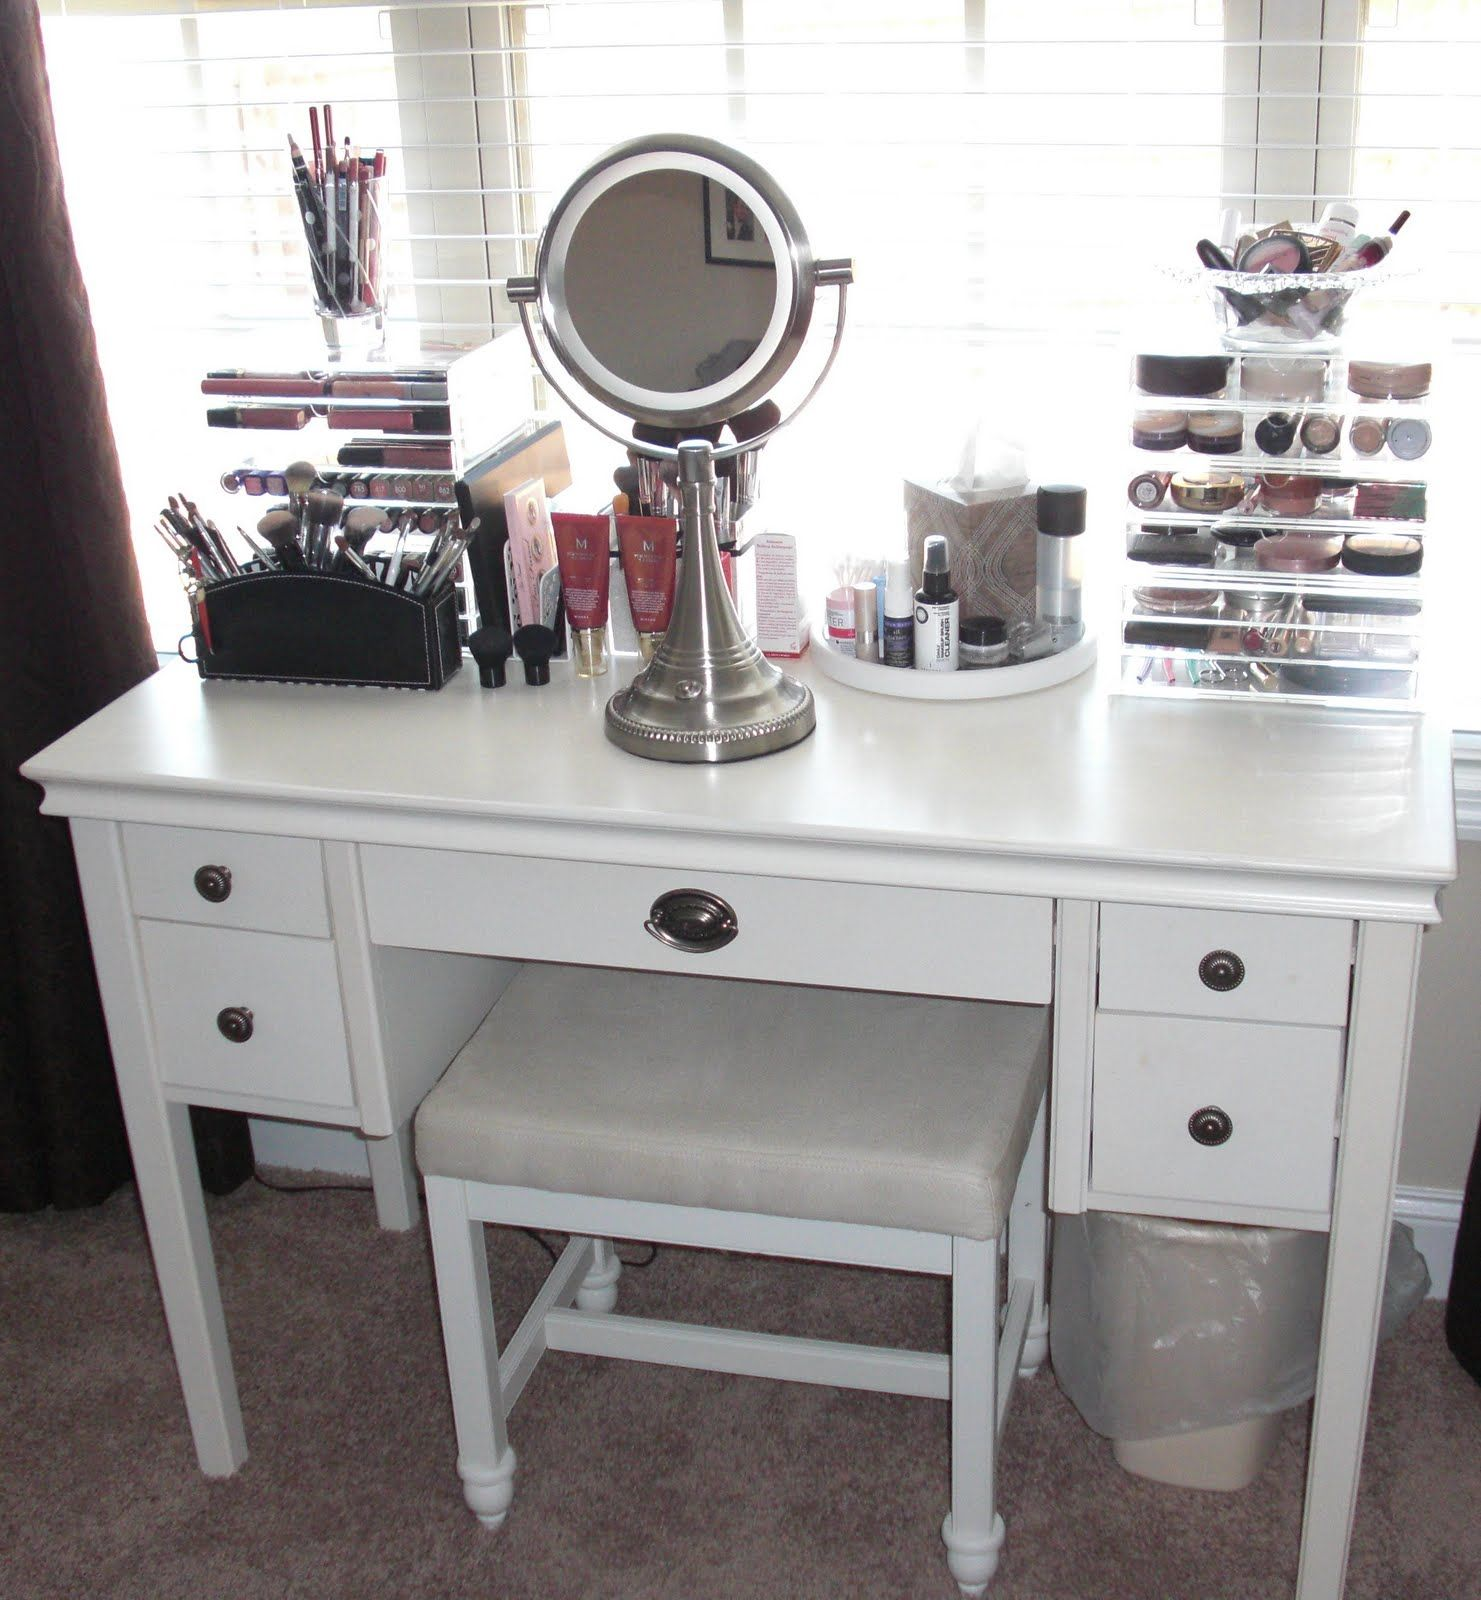 Superb Makeup Vanity No Mirror Part - 3: Peachy Makeup Vanity Table Idea And Makeup Vanity Table Idea With Also  Makeup With Storage Organizers In Vanity Makeup Table